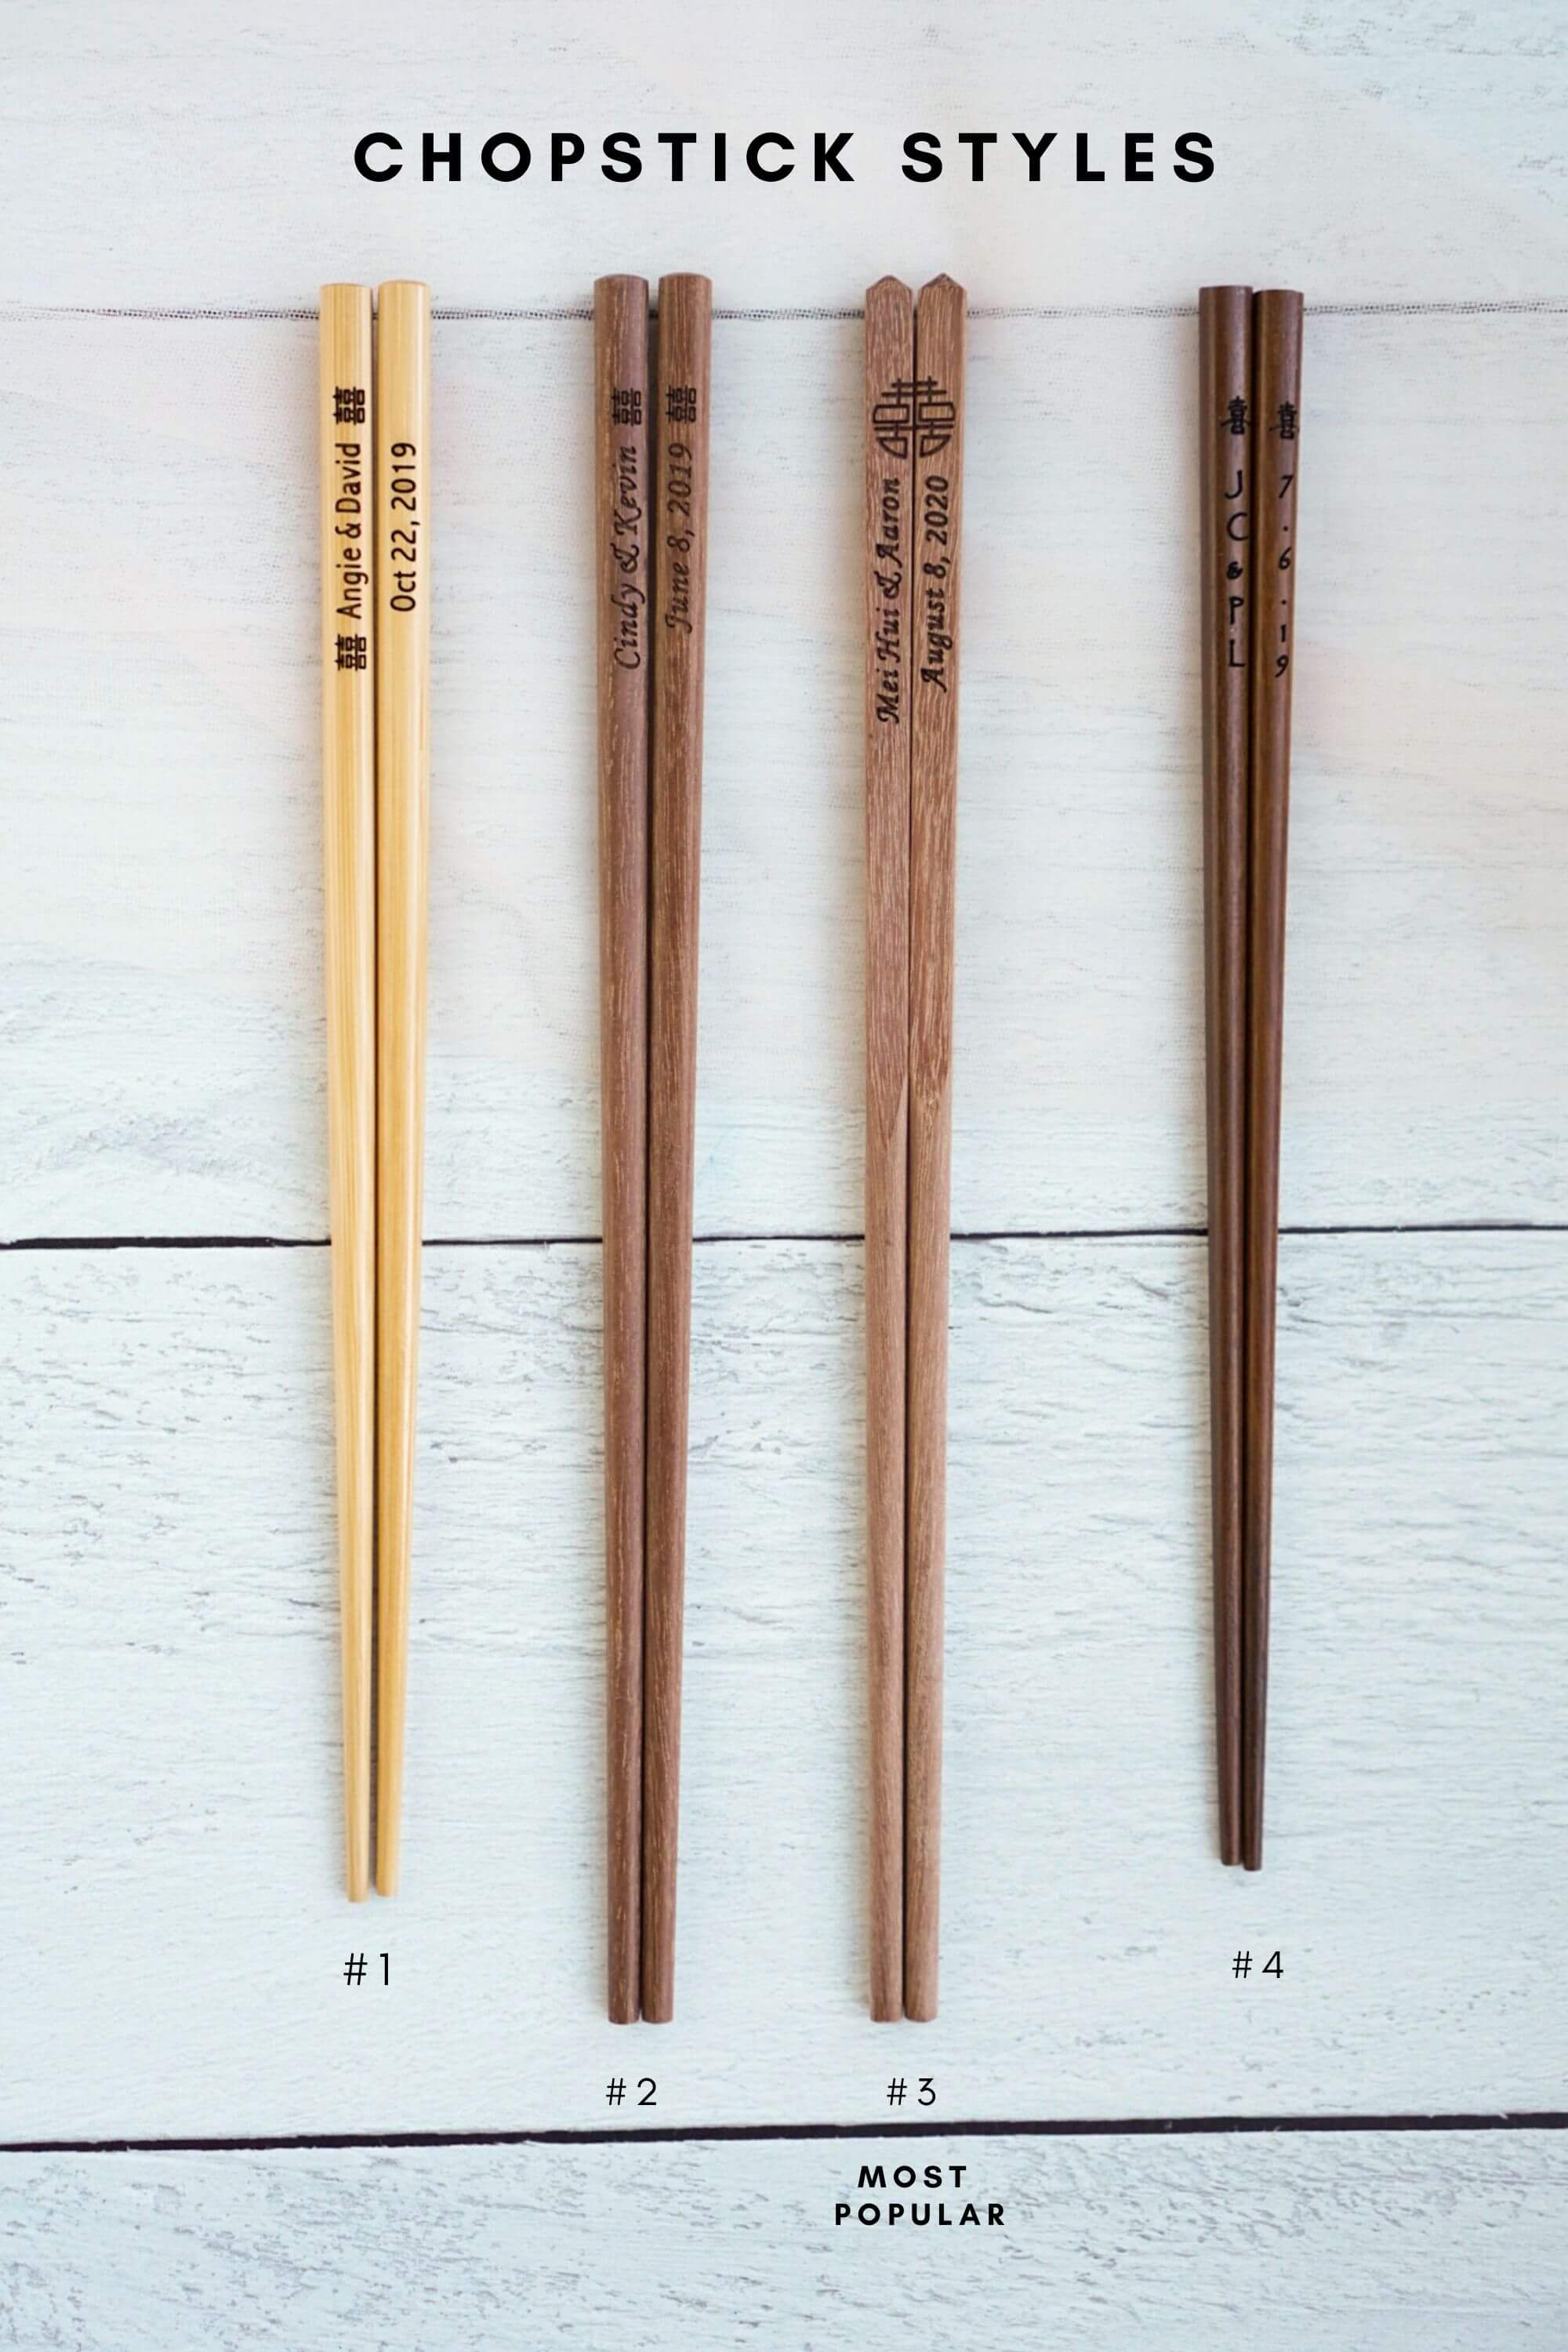 Custom Chopsticks